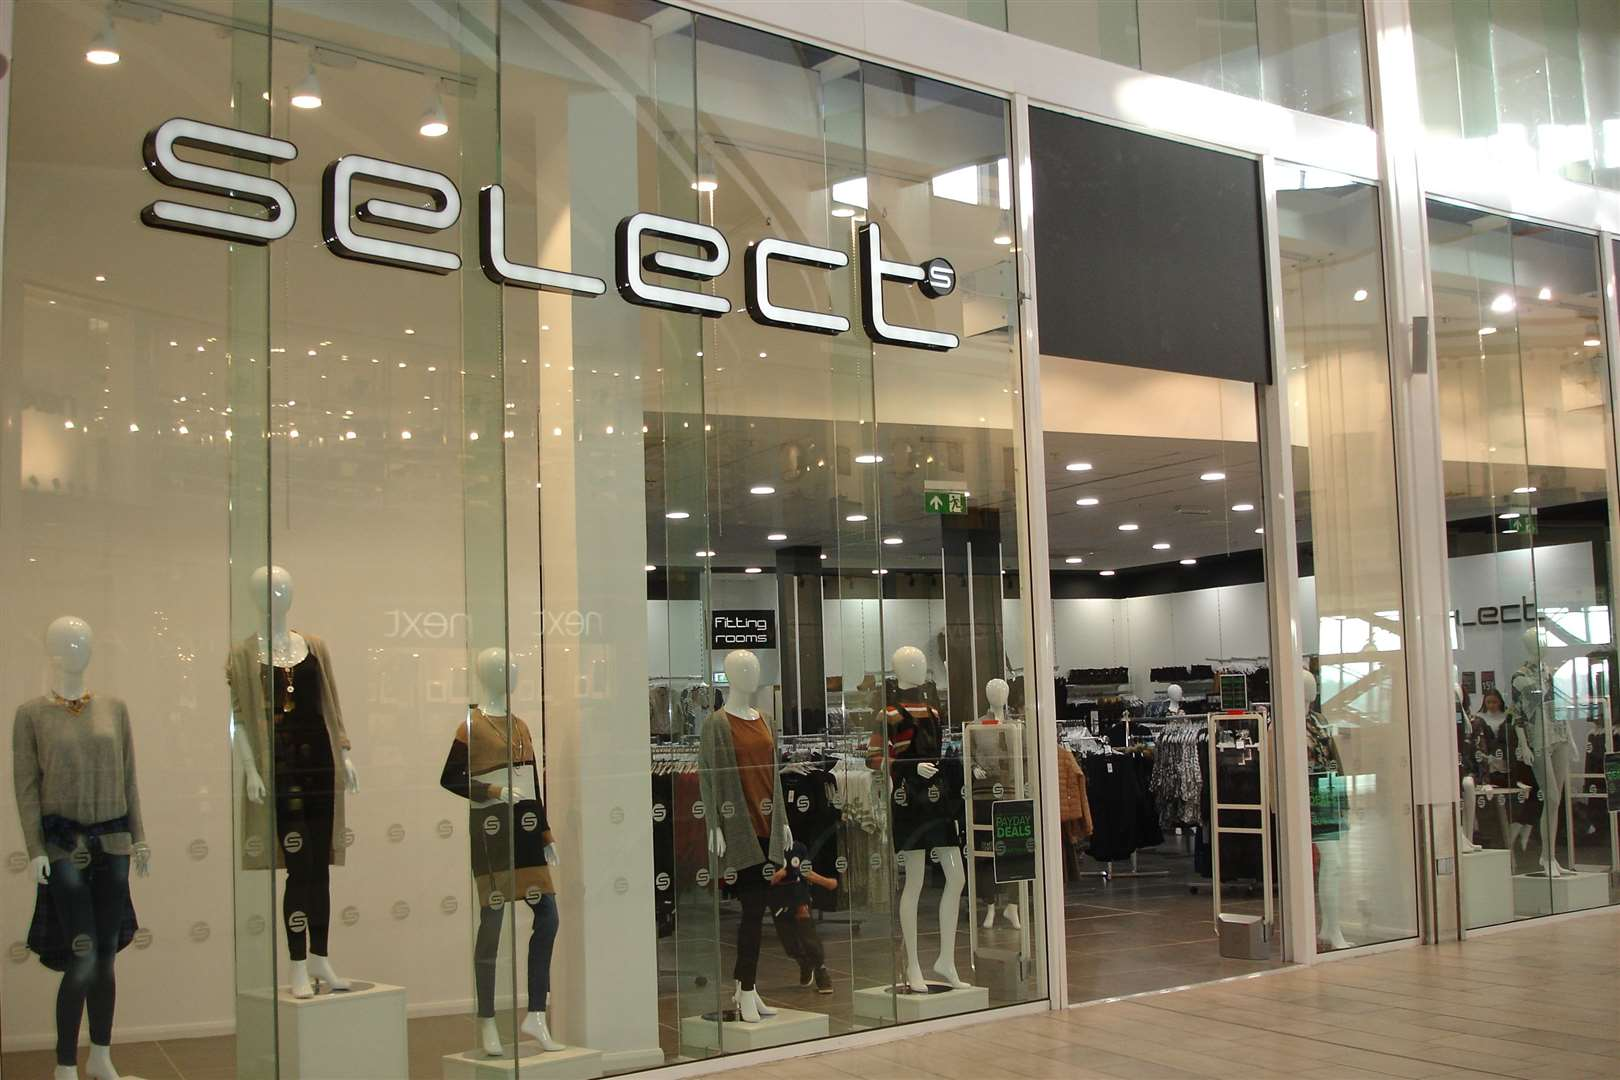 Select has 169 stores nationwide and employs some 1,800 staff